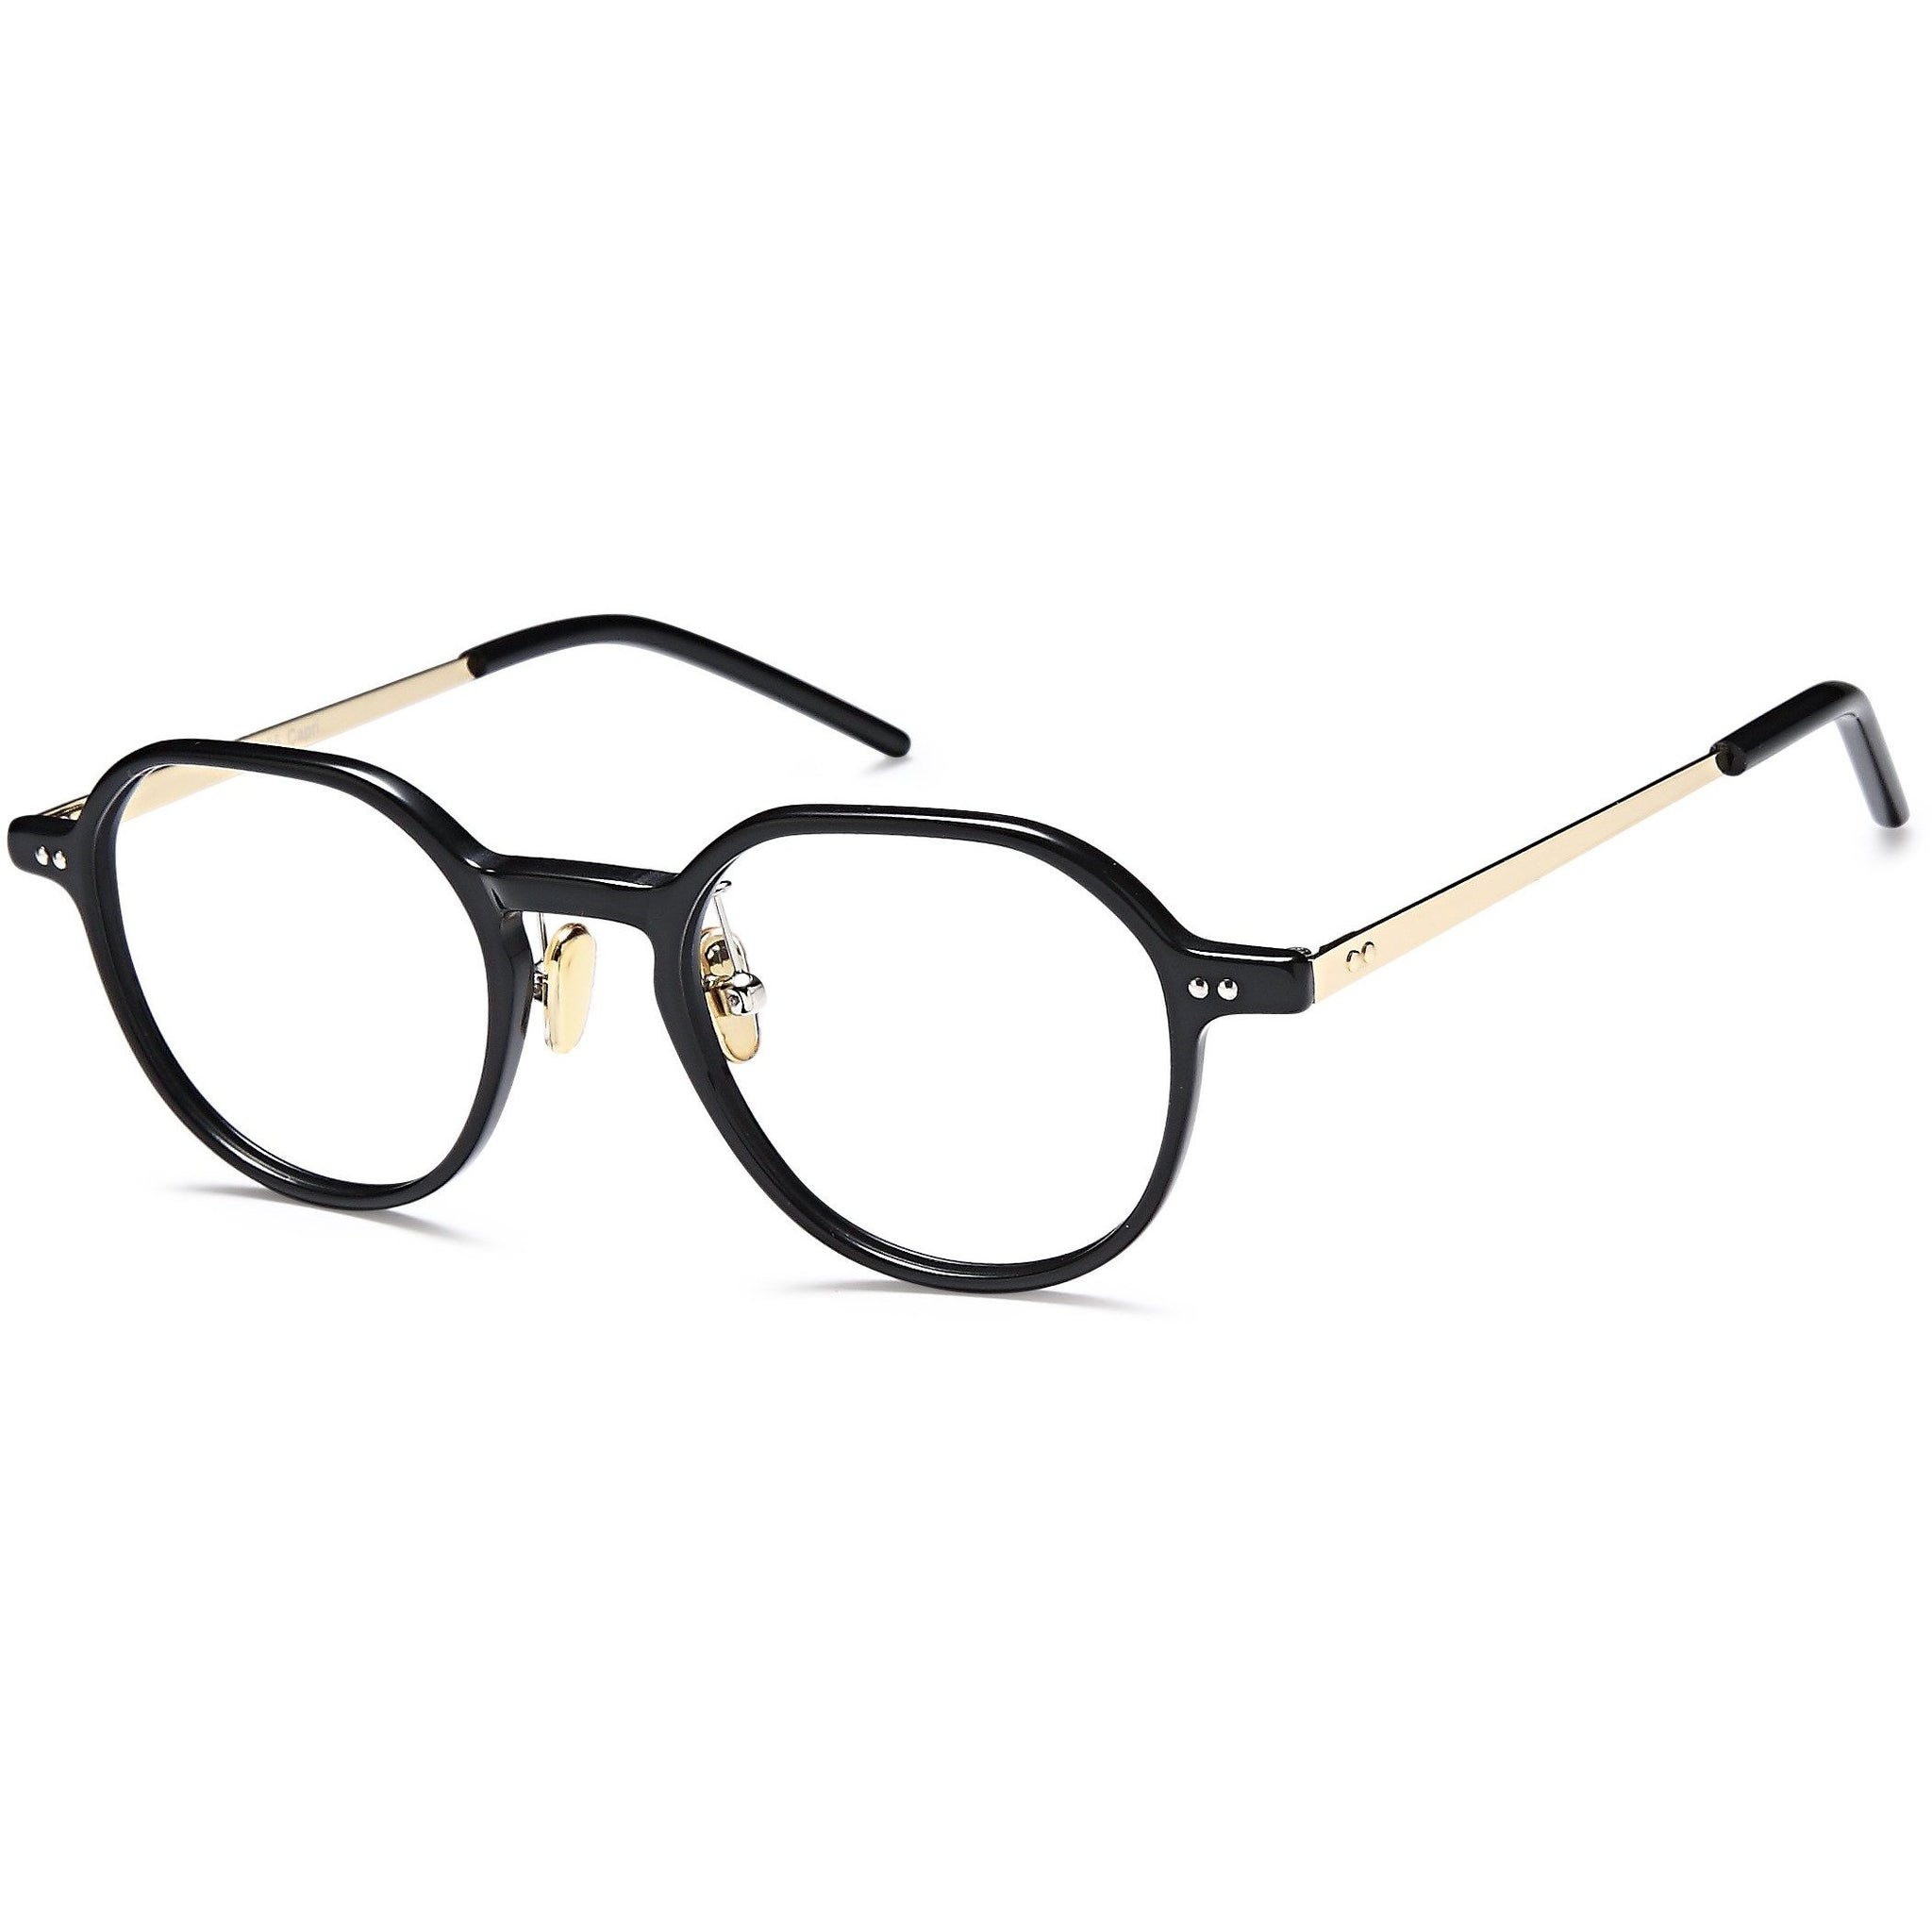 Leonardo Prescription Glasses DC 335 Eyeglasses Frame